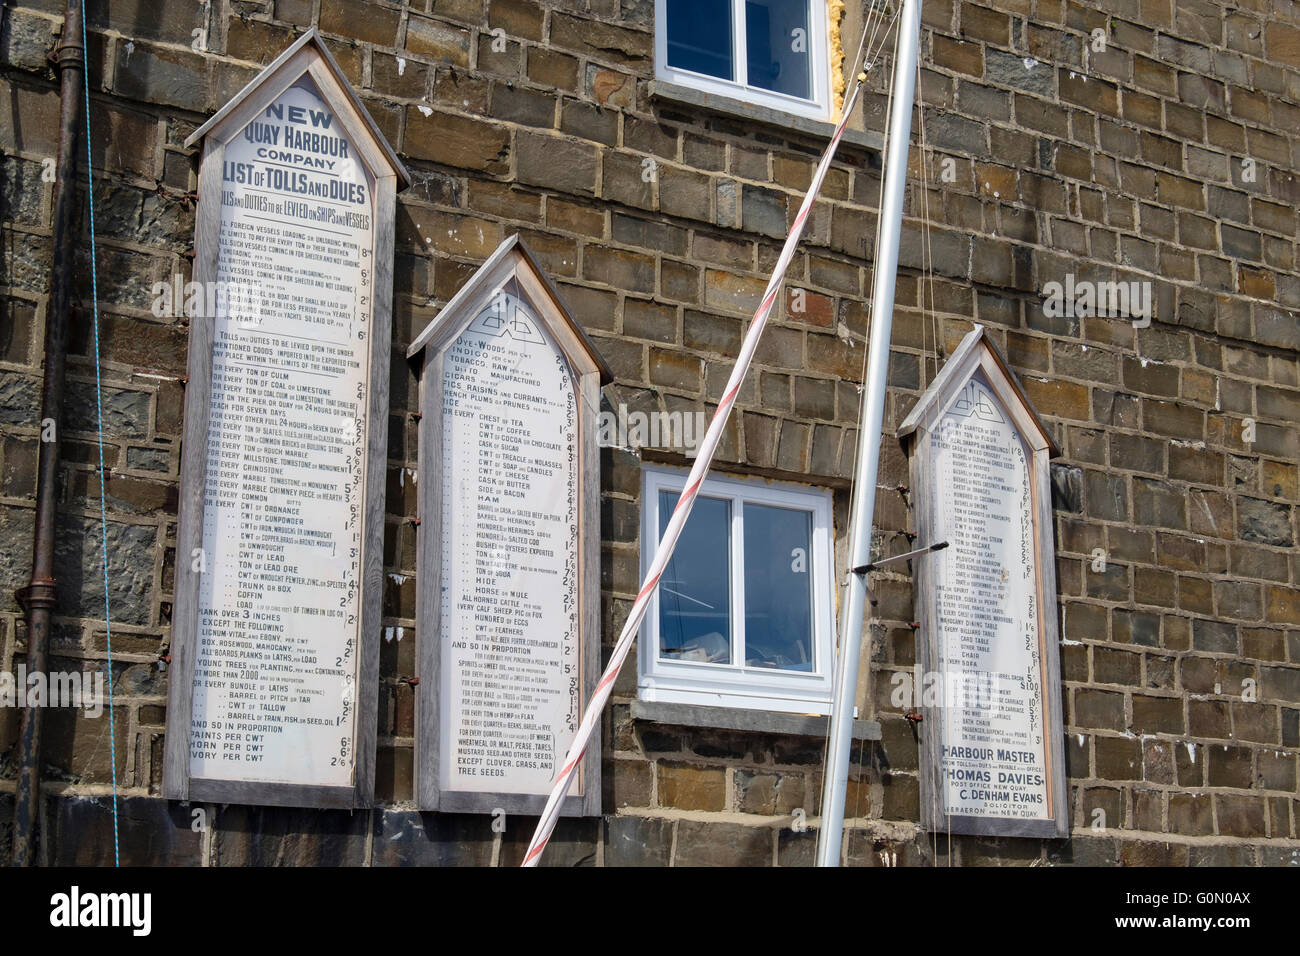 Old Harbour Company historic list of Tolls and Dues for imports and exports levied on ships in New Quay, Ceredigion, - Stock Image